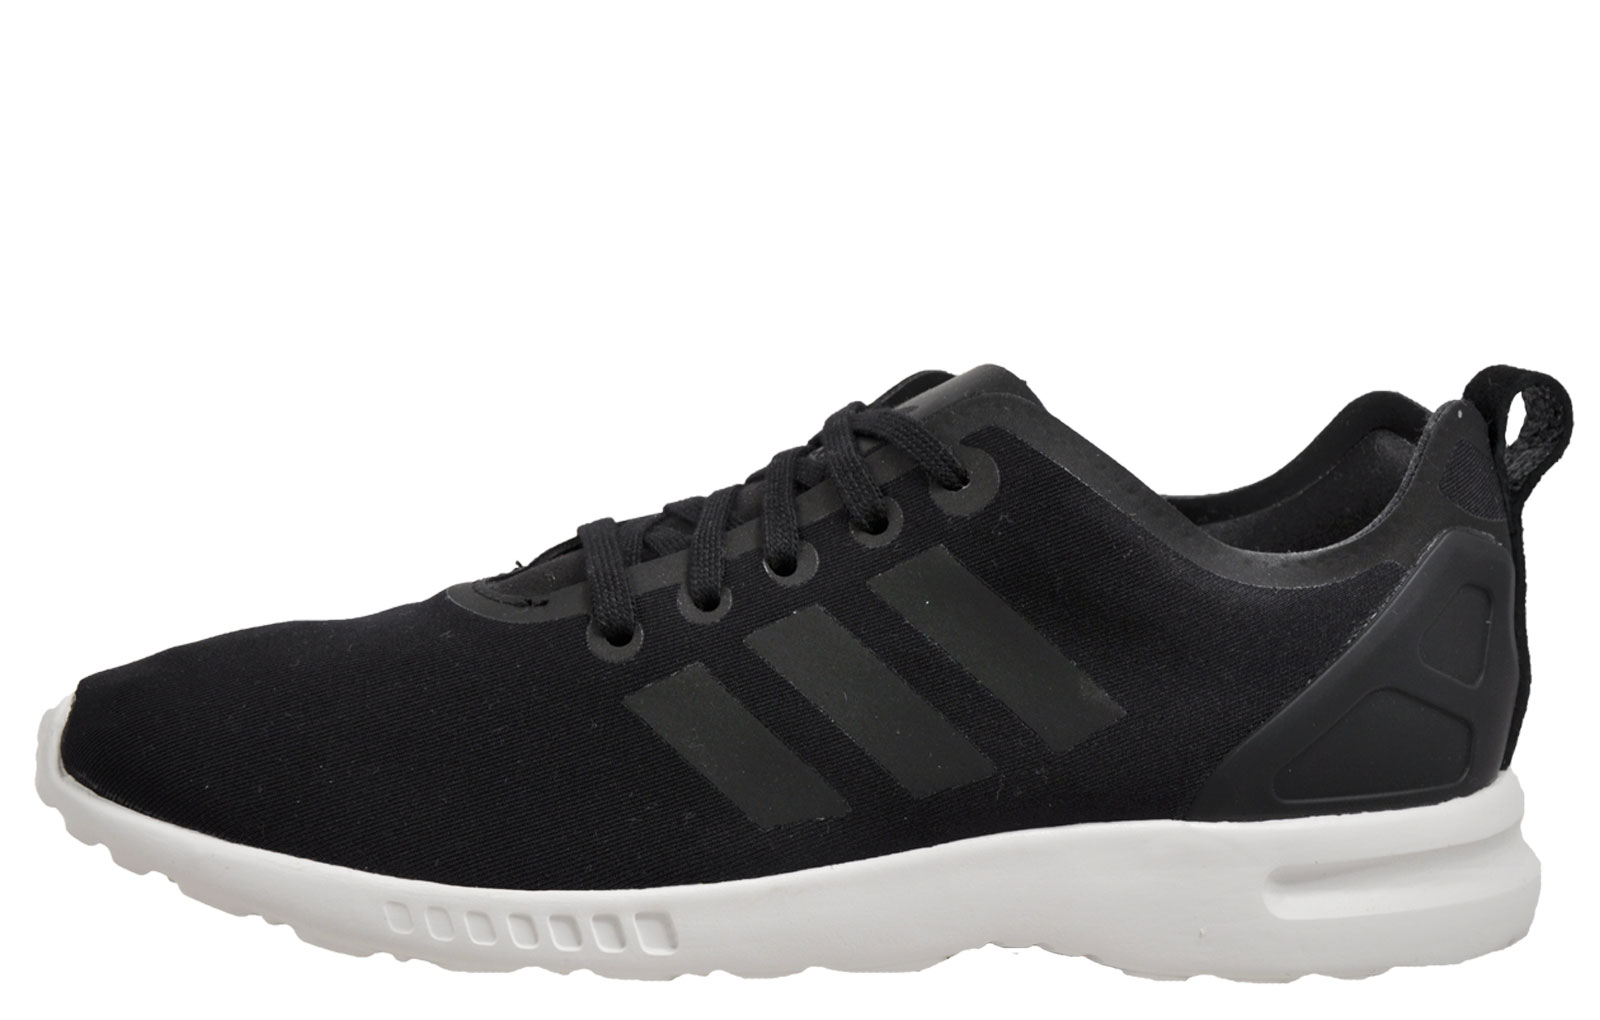 adidas zx flux torsion black and copper nz